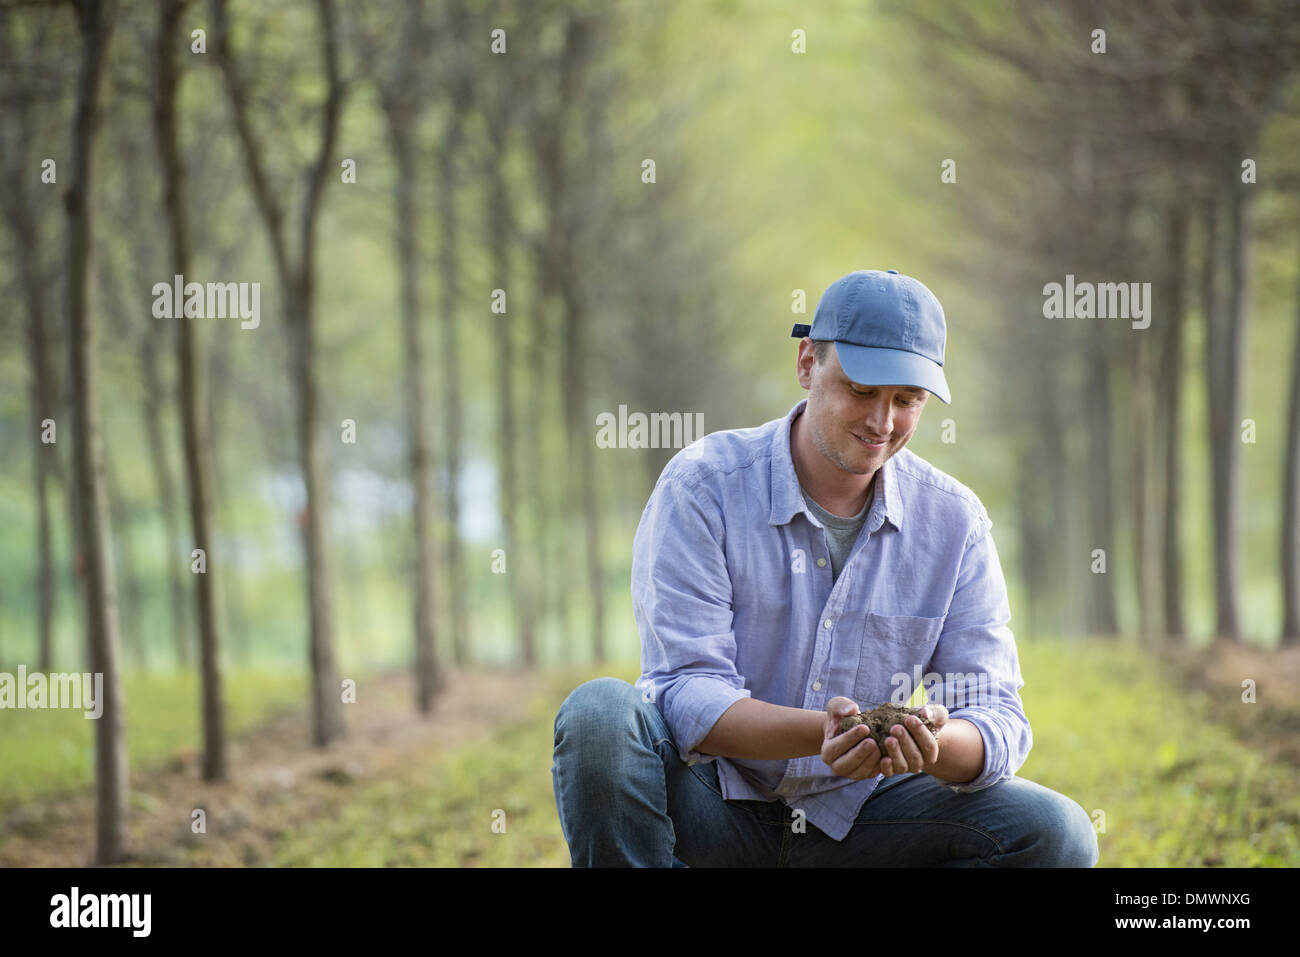 A man crouching and examining a handful of soil. - Stock Image